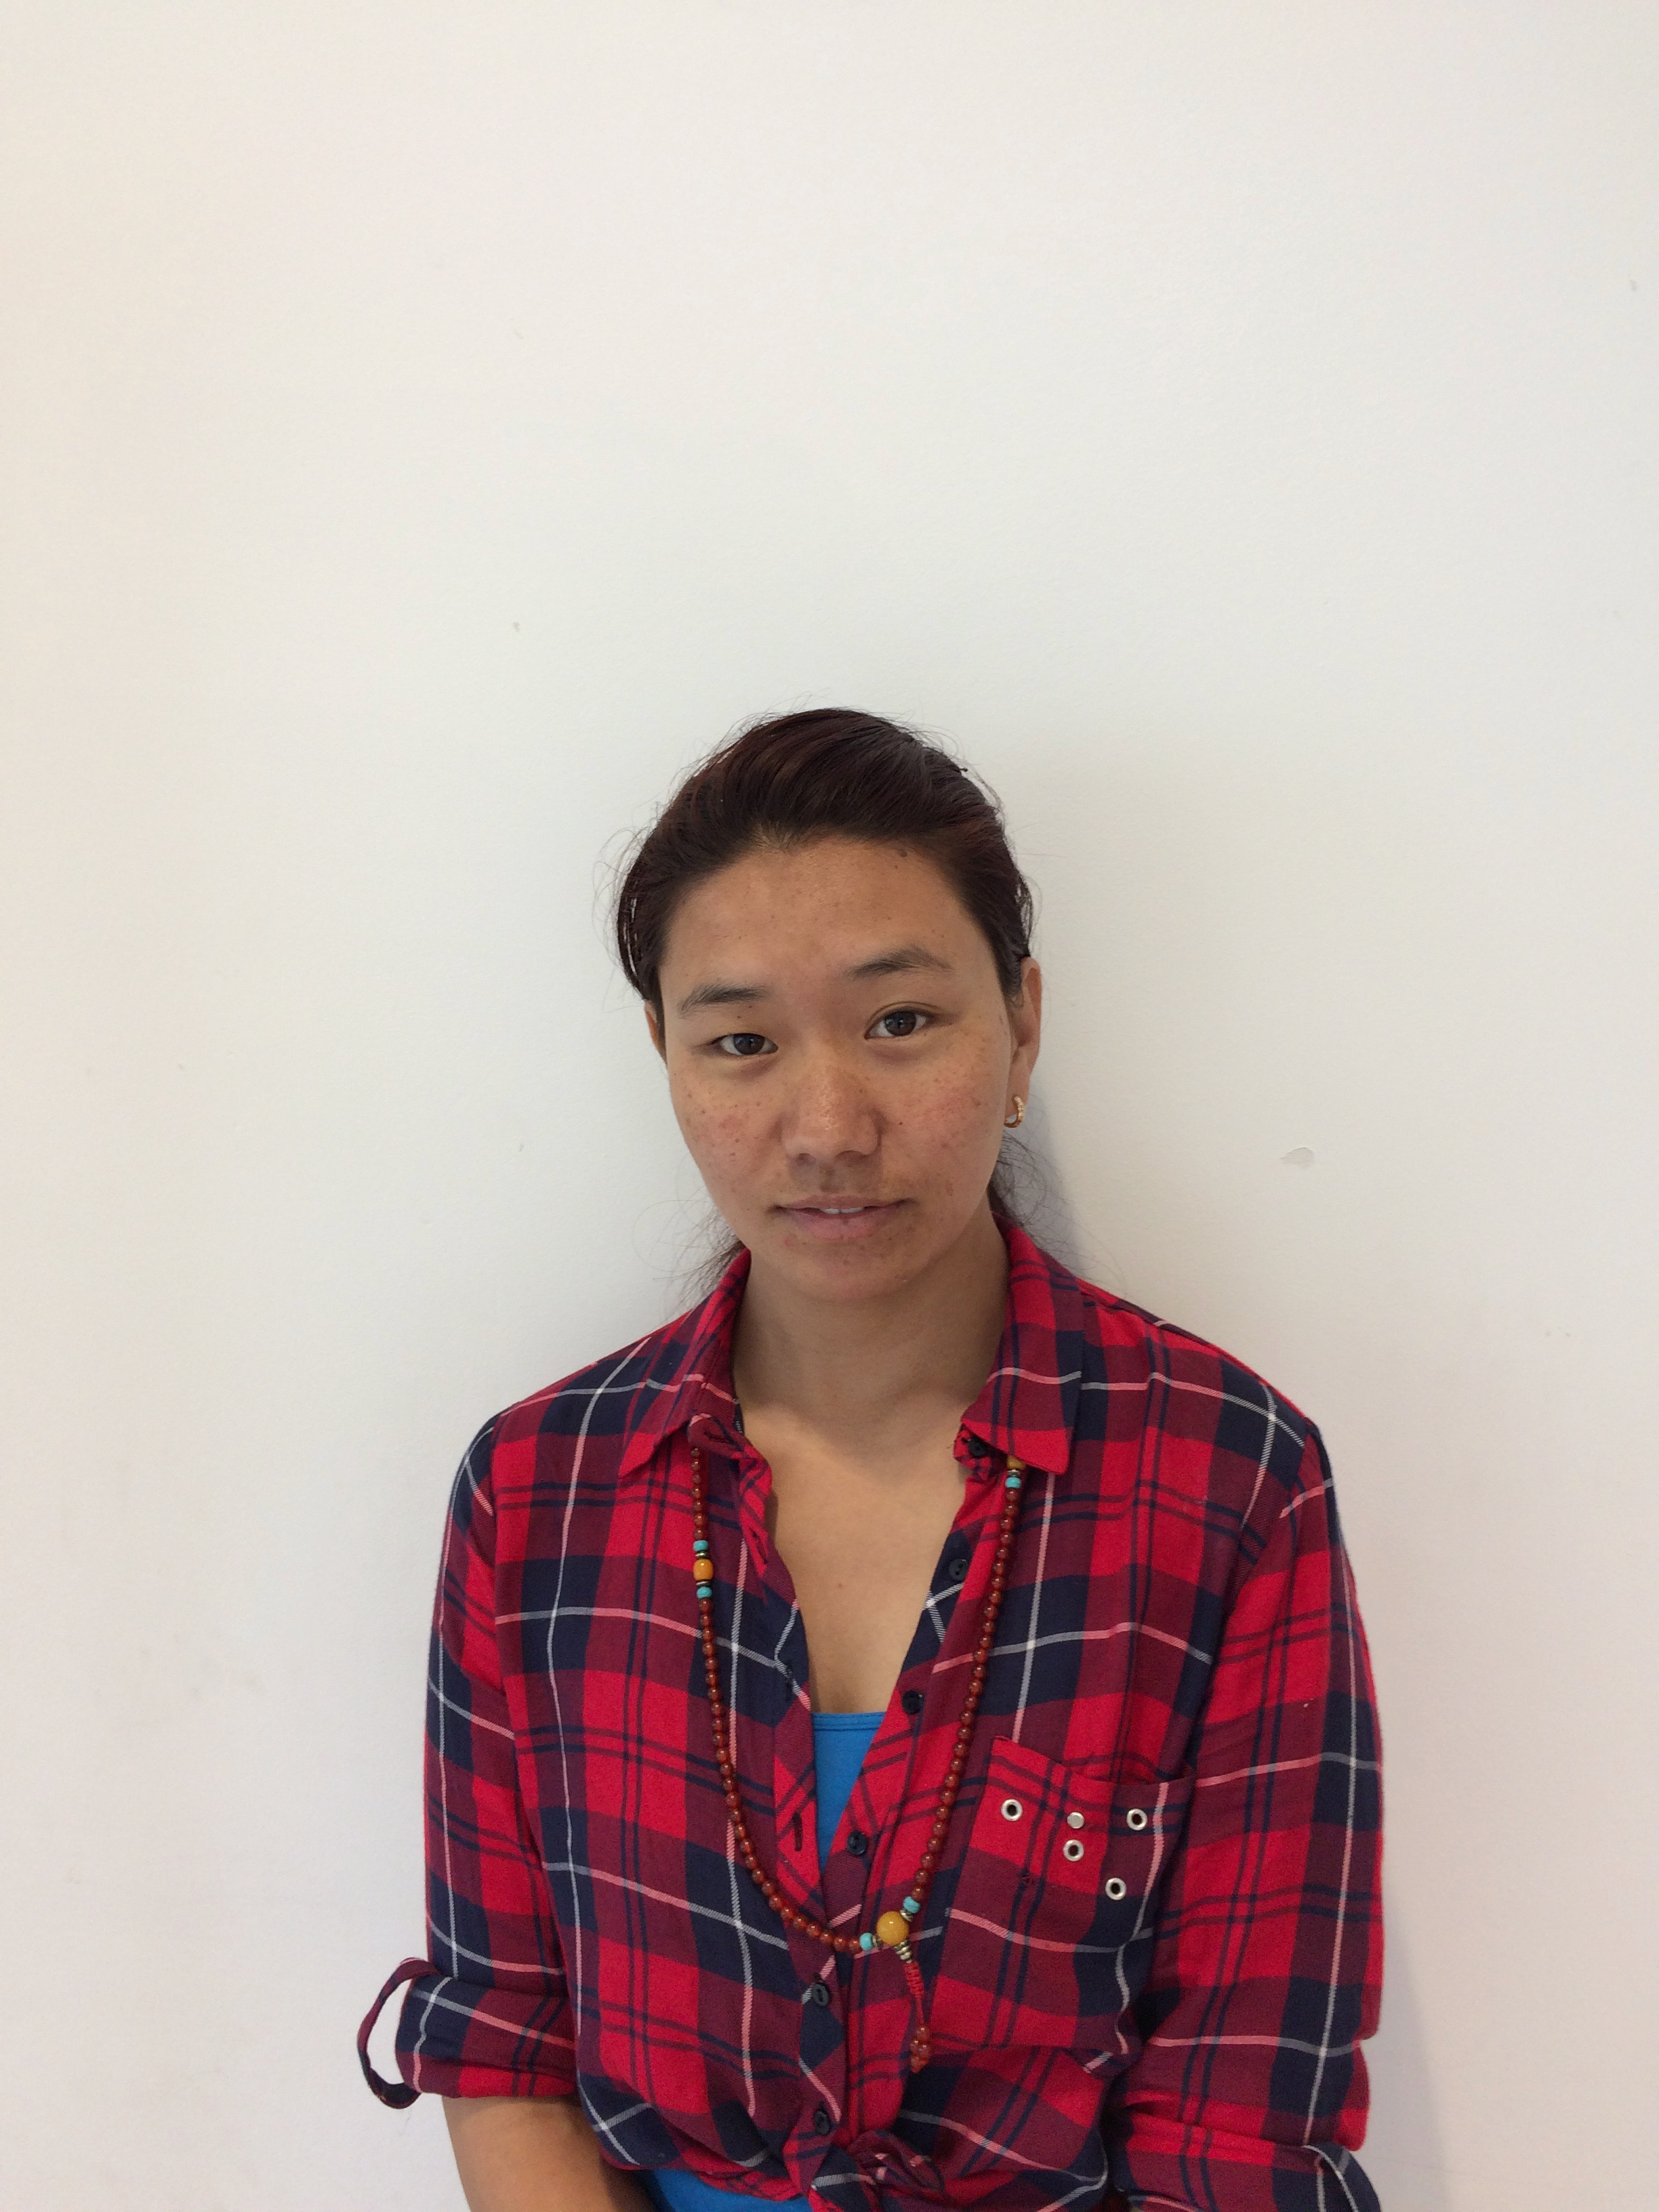 Bawa - Bawa is a Tibetan Masseuse in process for asylum in Belgium. She has studied Massage extensively in Tibet and India and now brings her experience and skill in the art of relaxation to share with us in Belgium.Massage 30 minutes: €30  Massage 60 minutes: €50